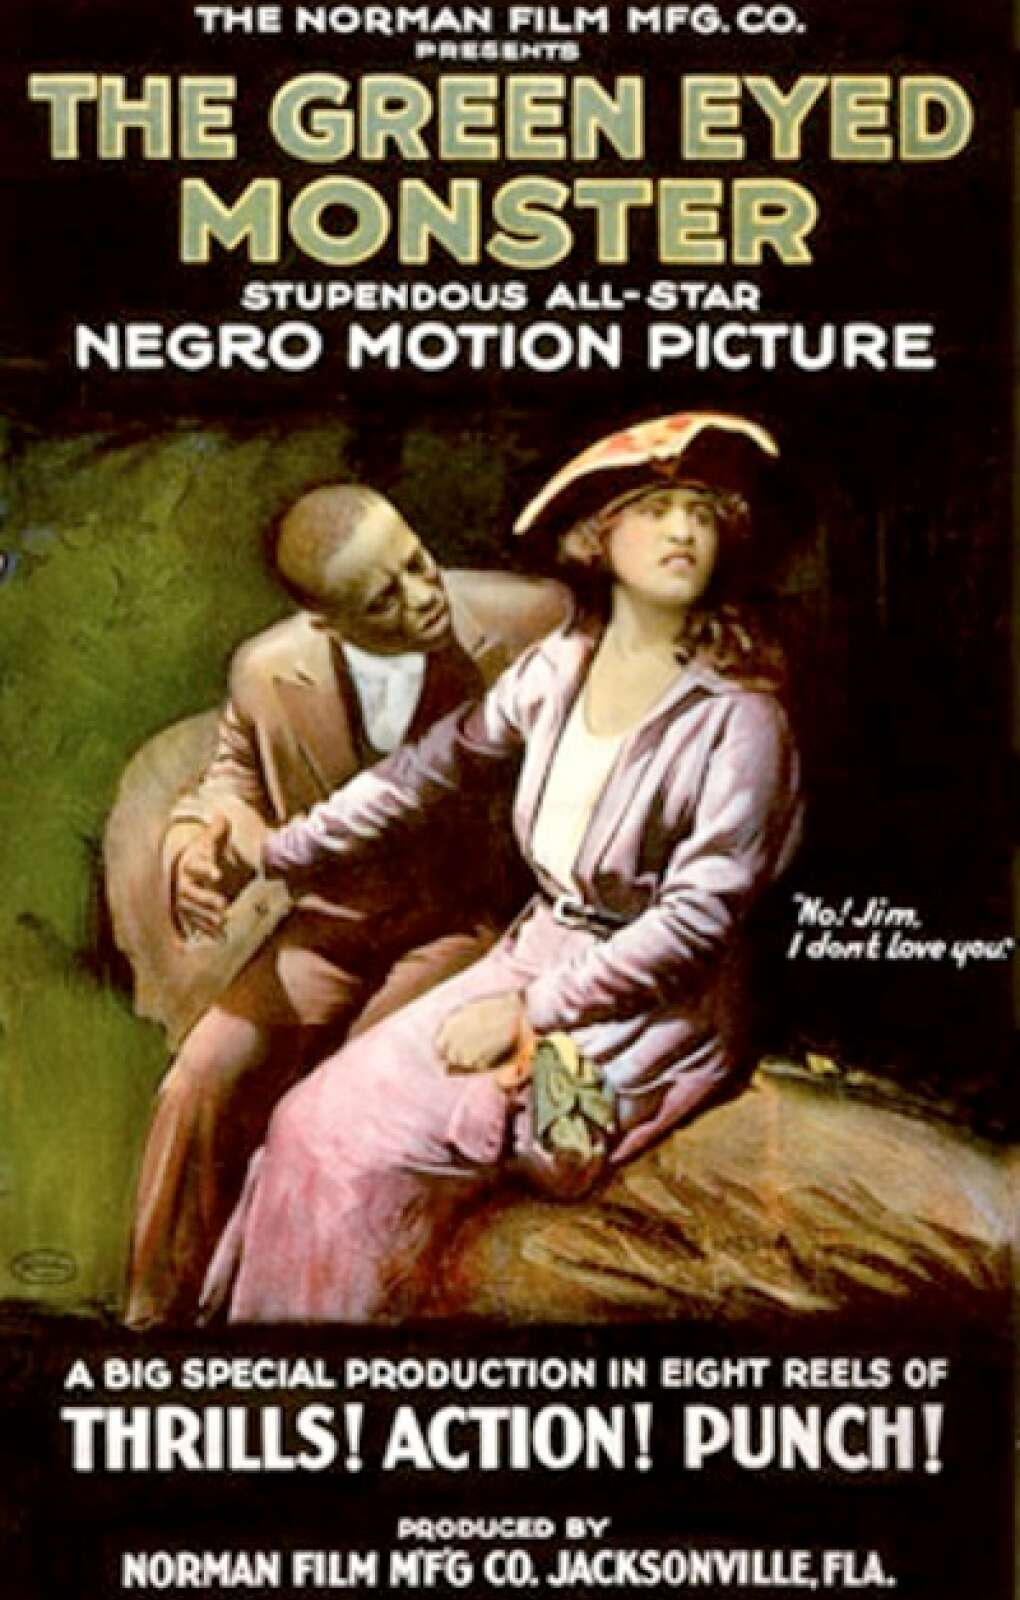 Poster of 'The Green Eyed Monster' motion picture